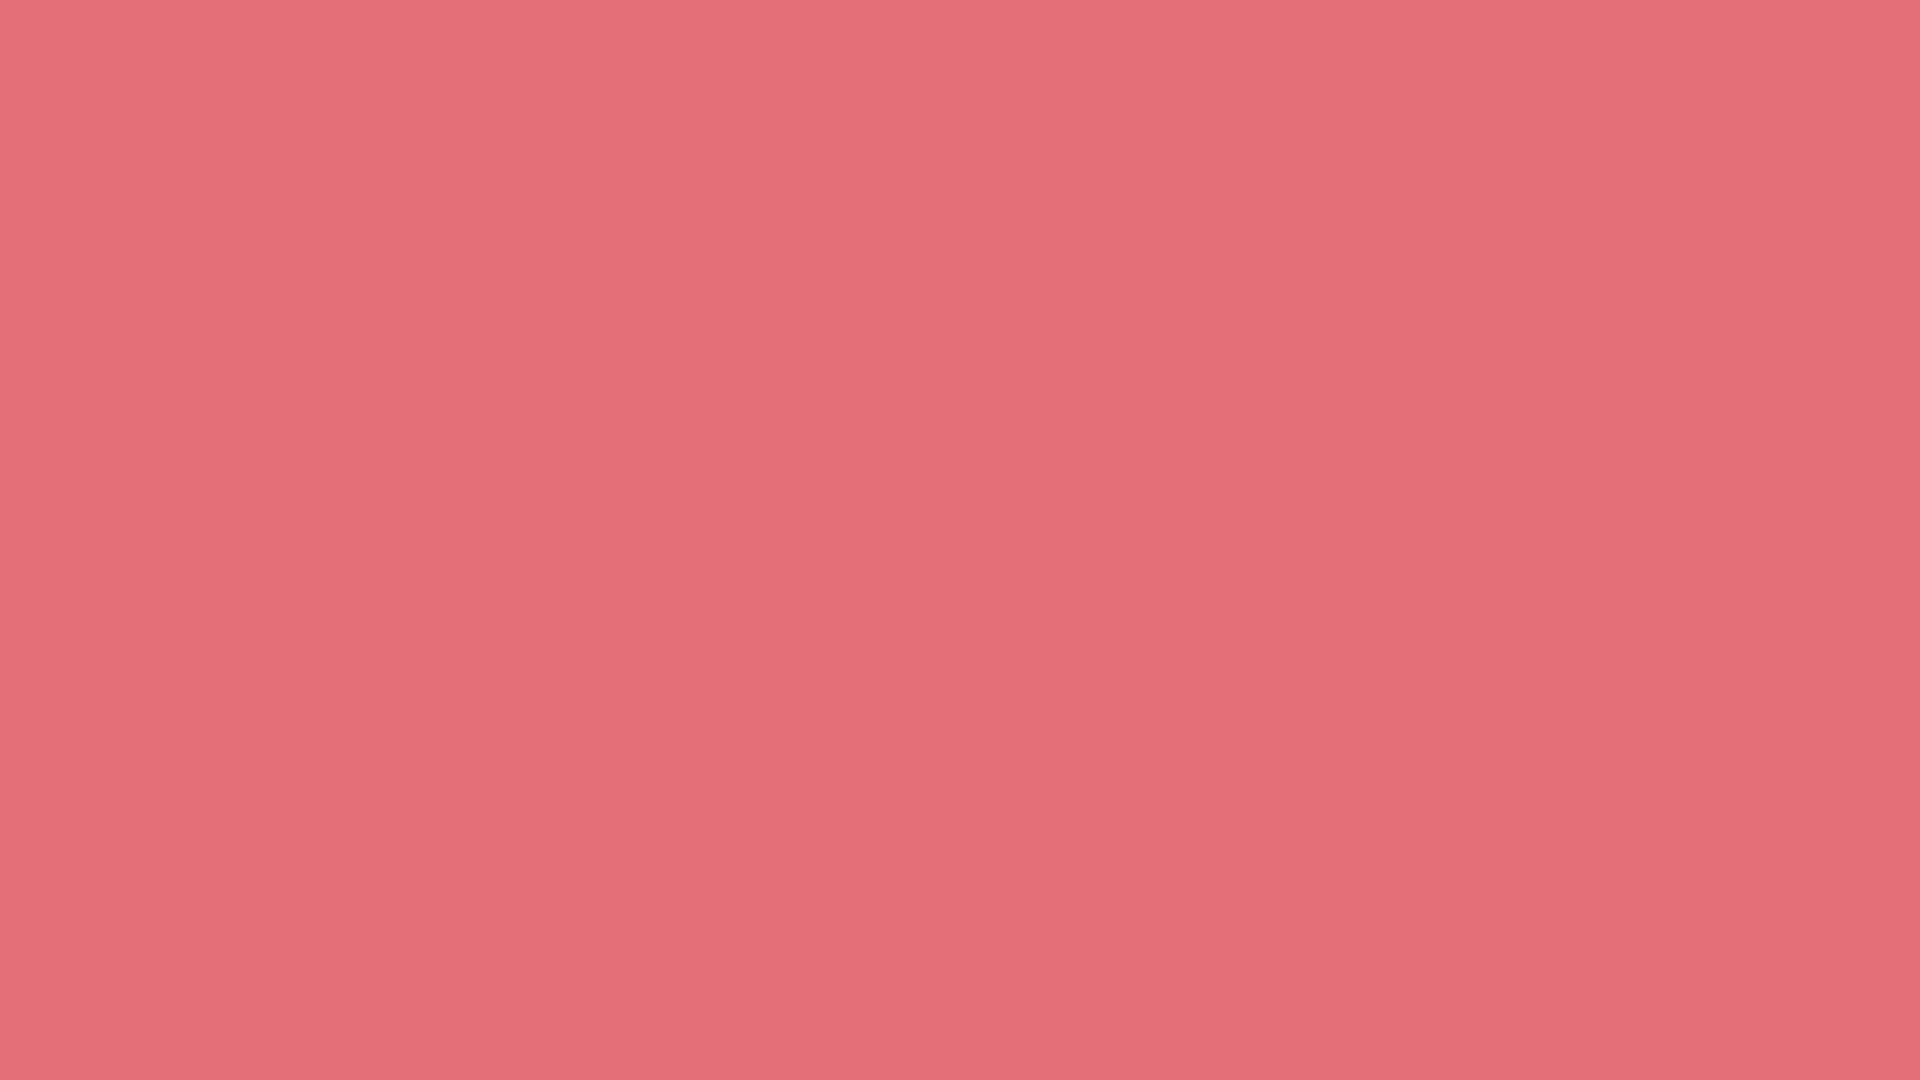 1920x1080 Tango Pink Solid Color Background